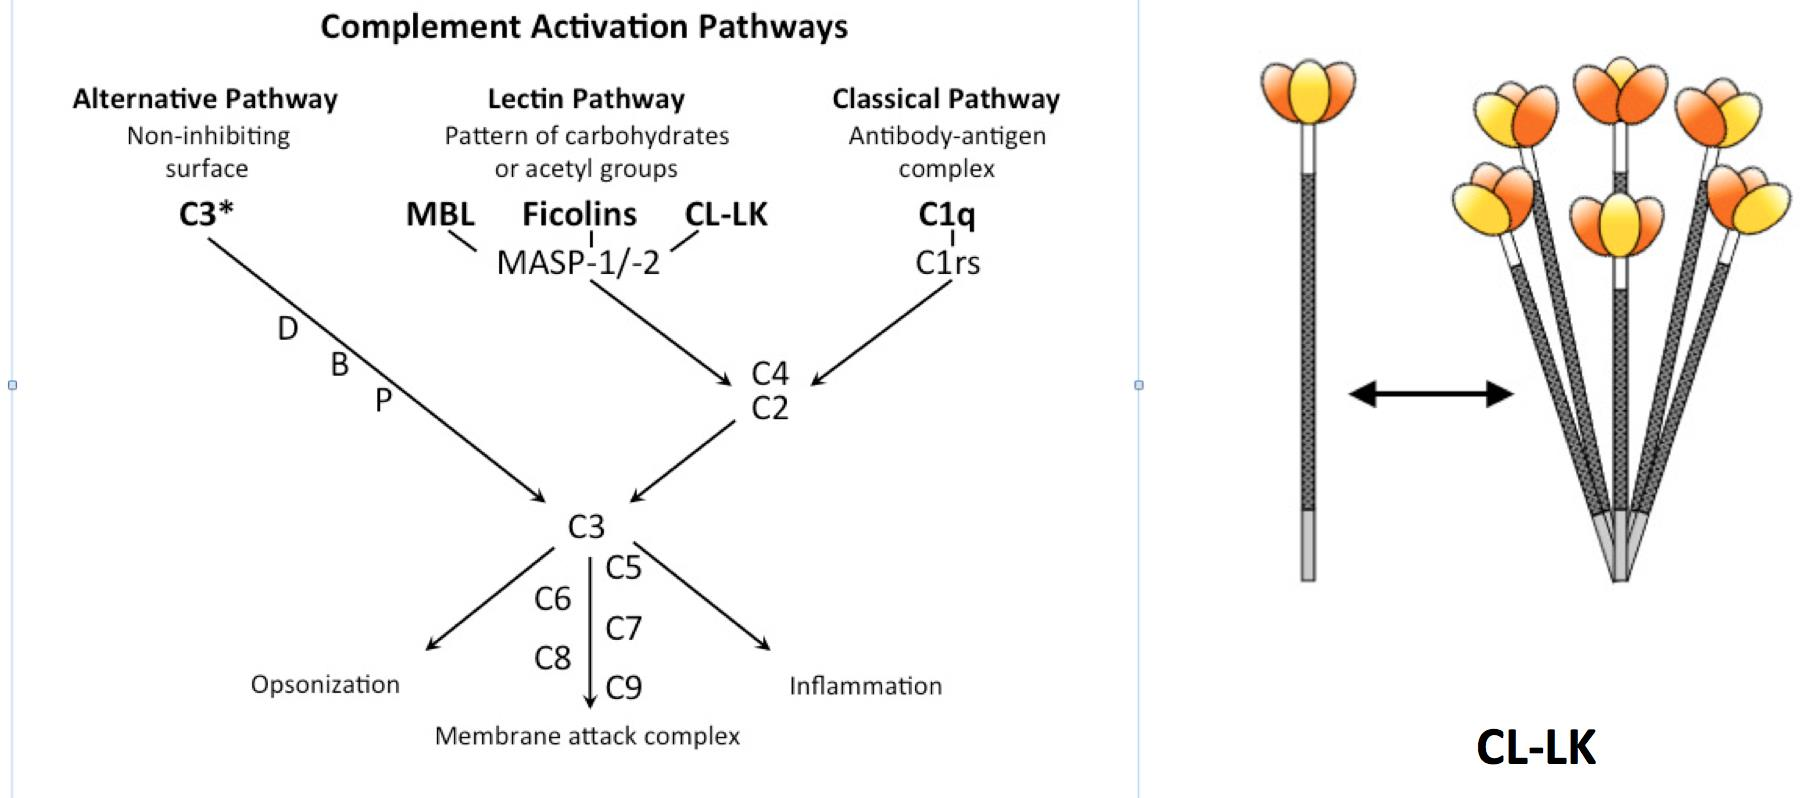 Fig. 1 A) The complement system with its three activation pathways and effector functions. CL-LK is part of the lectin activation pathway and recognizes foreign glycconjugates exposing mannose residues at their terminal position. B) Composition of CL-LK, made of CL-L1 (yellow) and CL-K1 (orange). The colored domains correspond to the lectin / carbohydrate recognition that interact with foreign glycoconjugates.